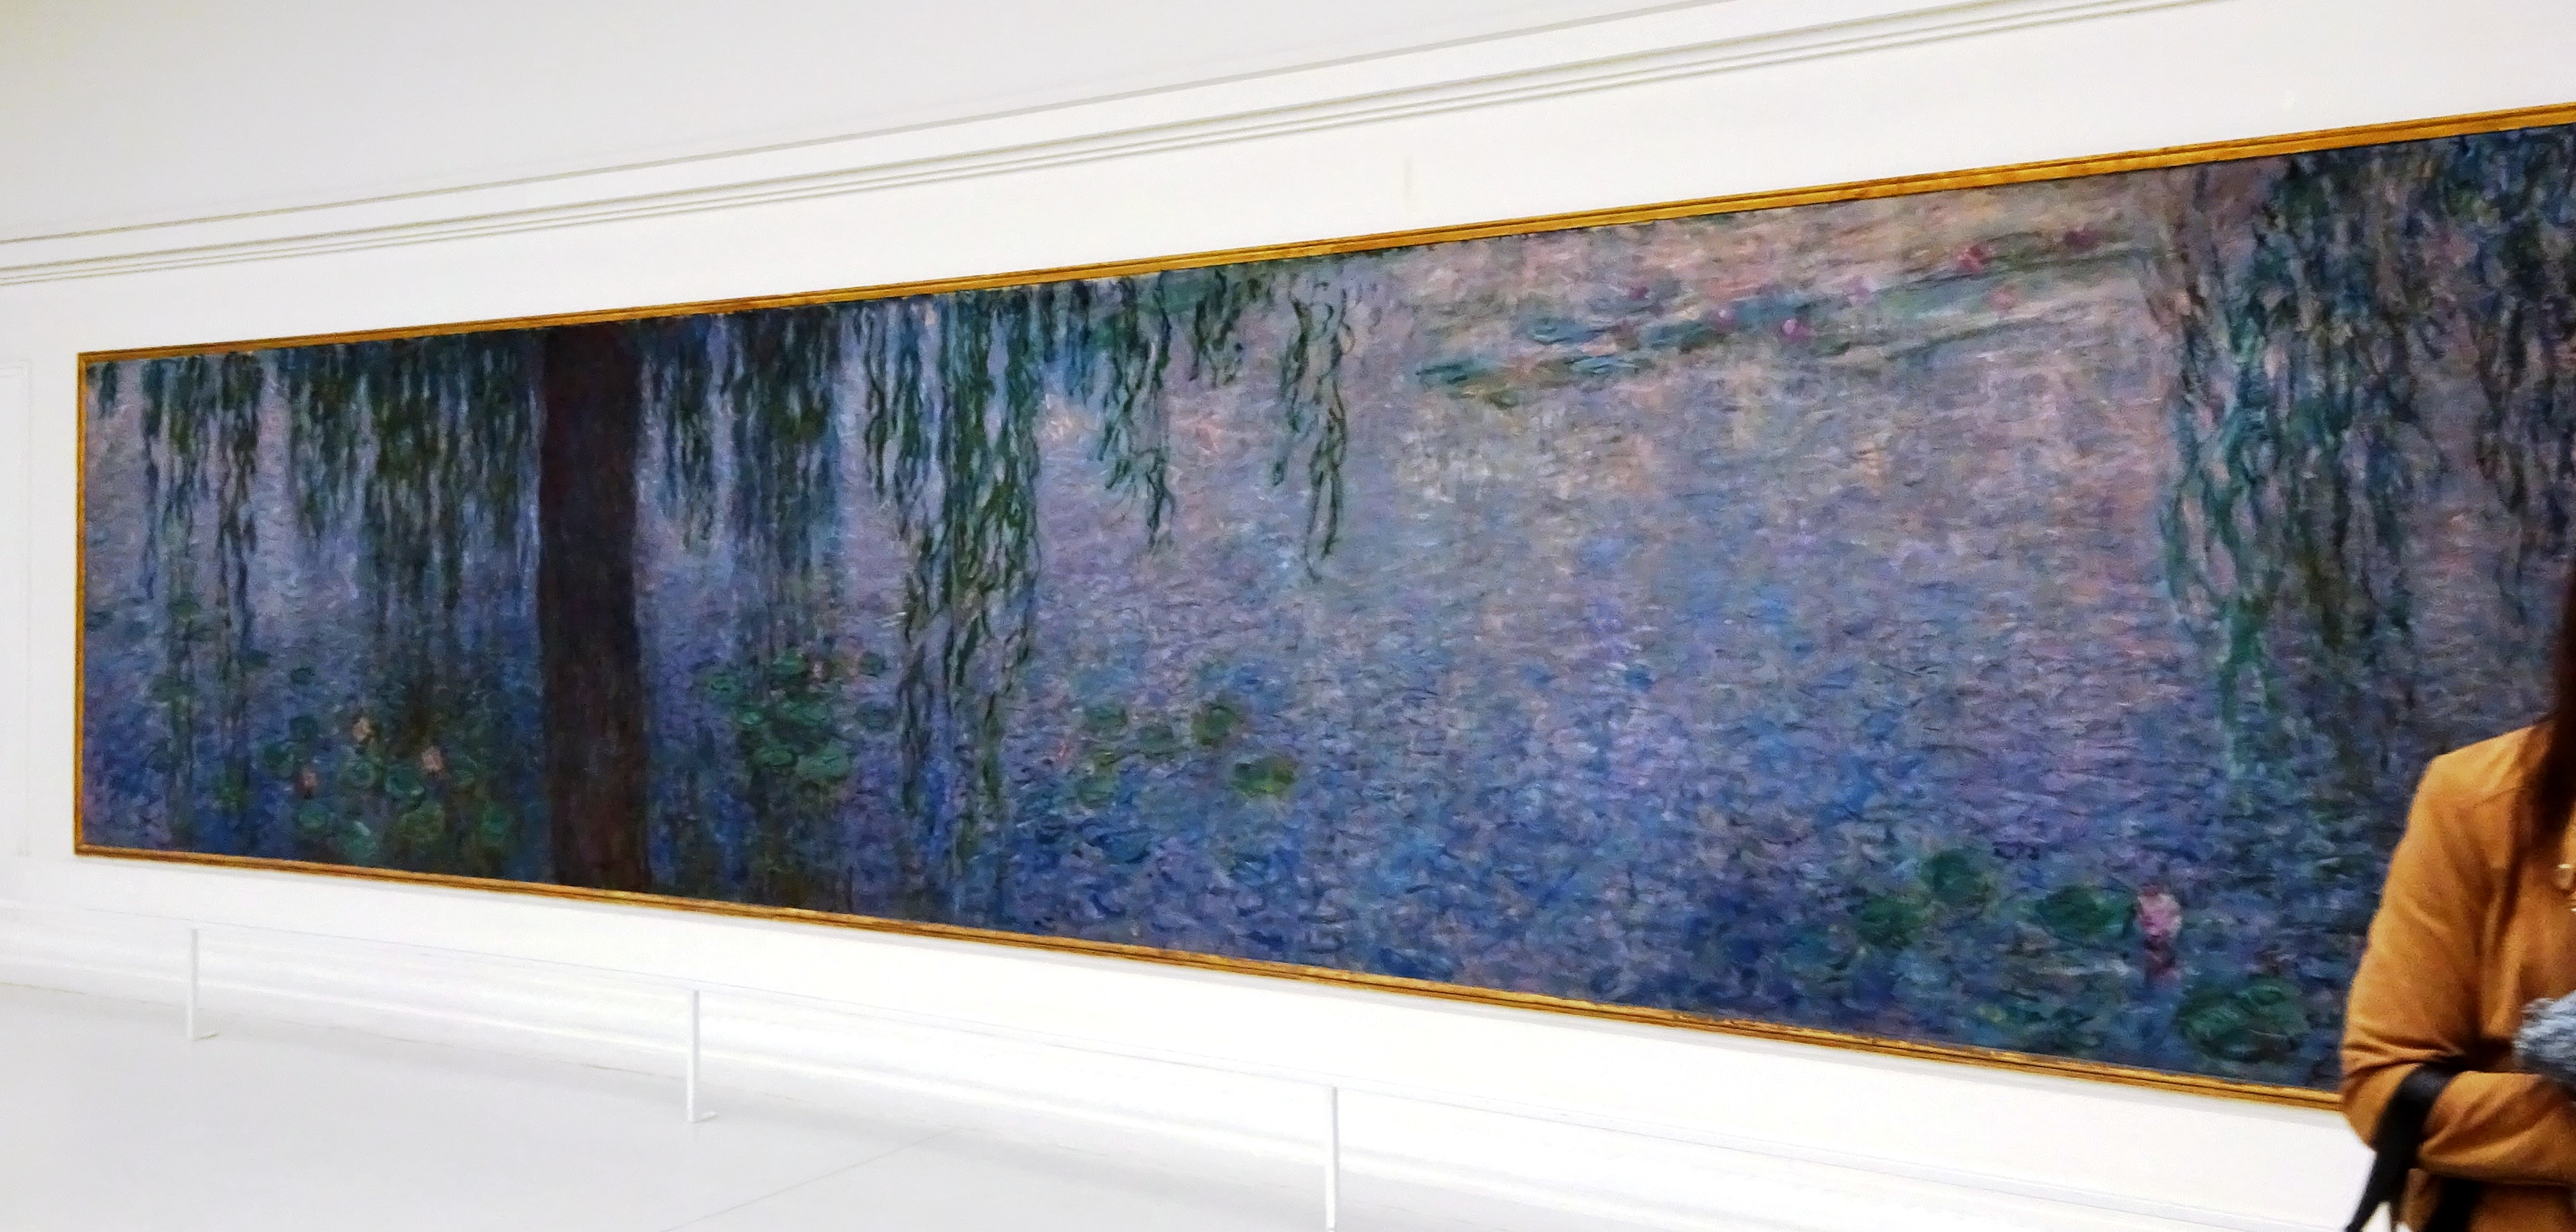 a comparison of de koonings lily pond and monets water lilies Water lilies is a series of approximately 250 oil paintings by french impressionist  claude  claude monet, the water lilies - setting sun, 1920–1926, musée de l' orangerie claude monet, reflections of clouds on the water-lily pond, c  on  19 june 2007, one of monet's water lily paintings sold for £185 million at a.